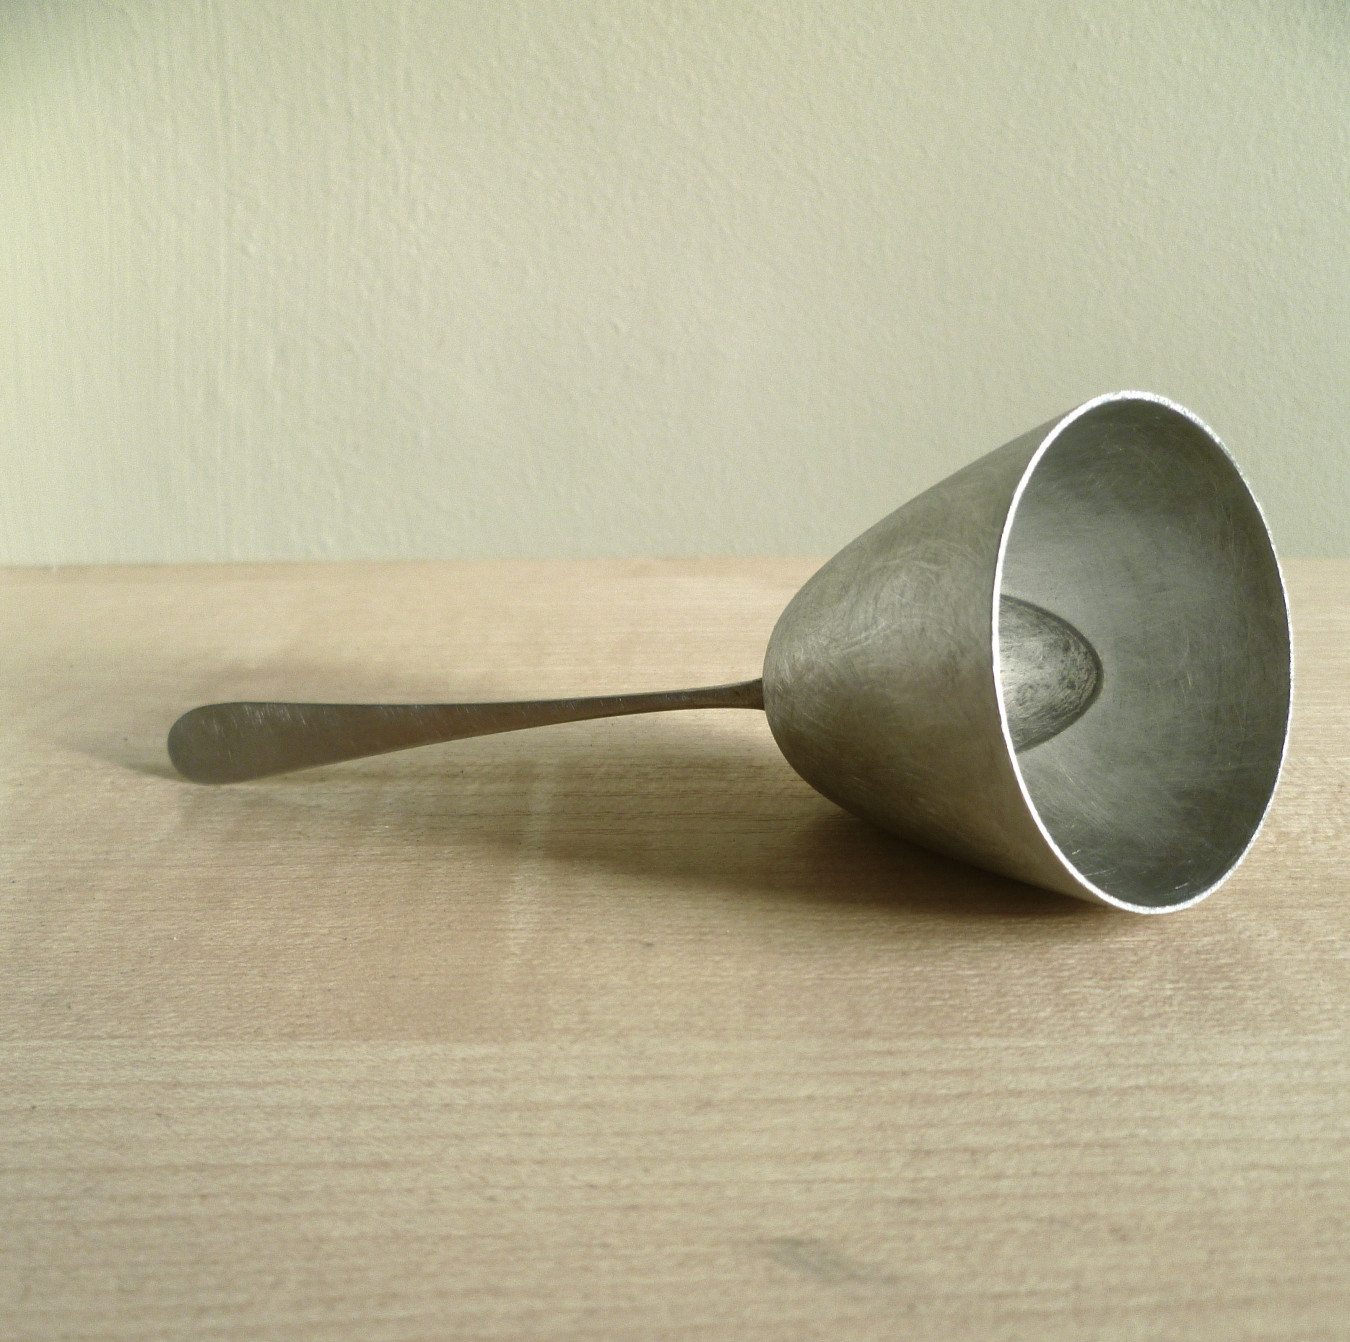 An image of a metal tear catcher made from an adapted spoon. In a resting position.